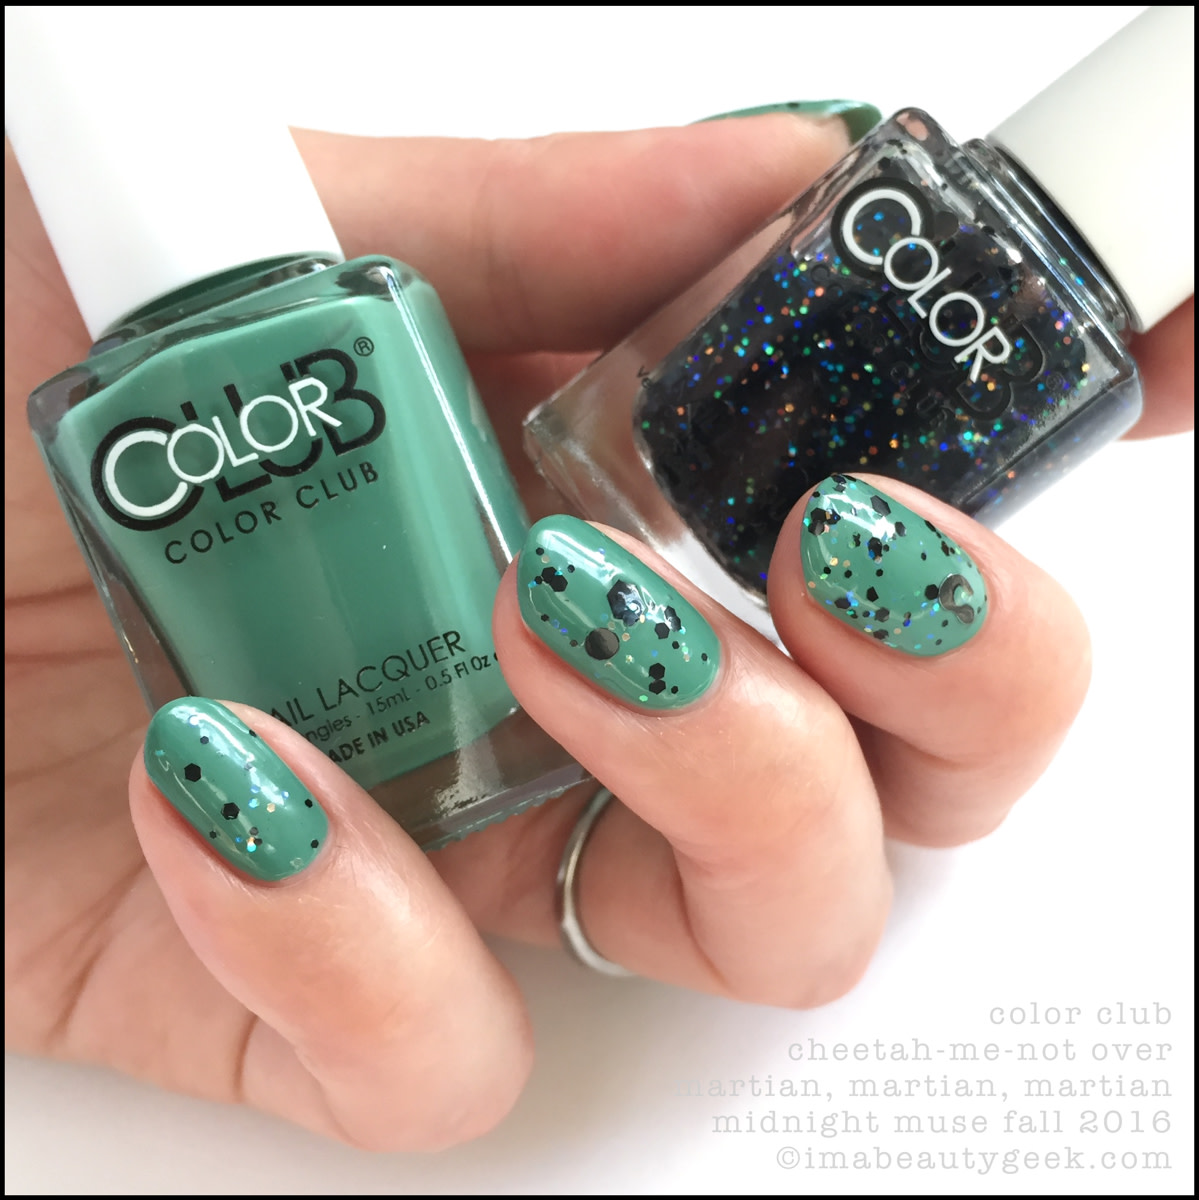 Color Club Cheetah Me Not over Martian Martian_Color Club Midnight Muse Fall 2016 Swatches Review